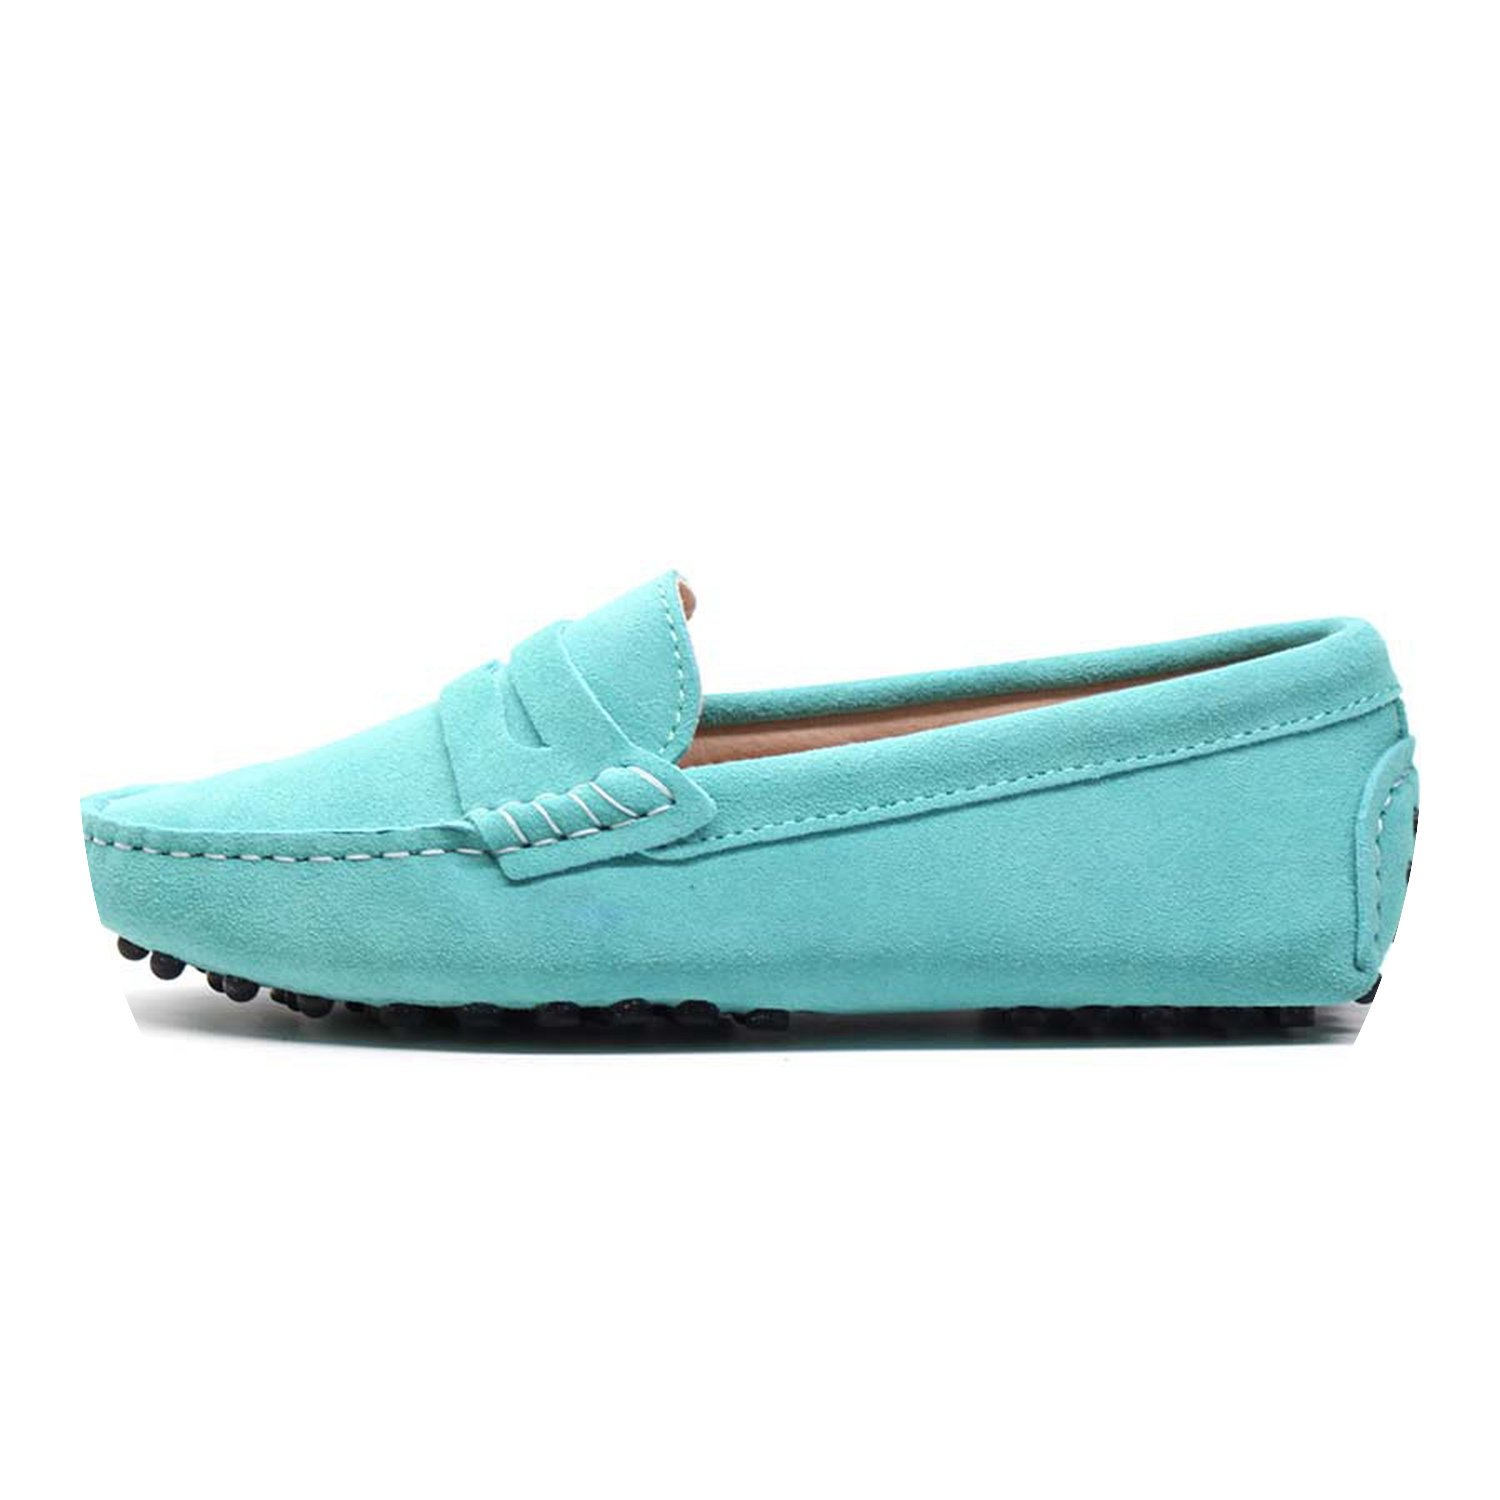 2018 New Women Flats Genuine Leather Driving Shoes Summer Women Casual Shoes B07DTZ3M7X 6 B(M) US|Mint Green